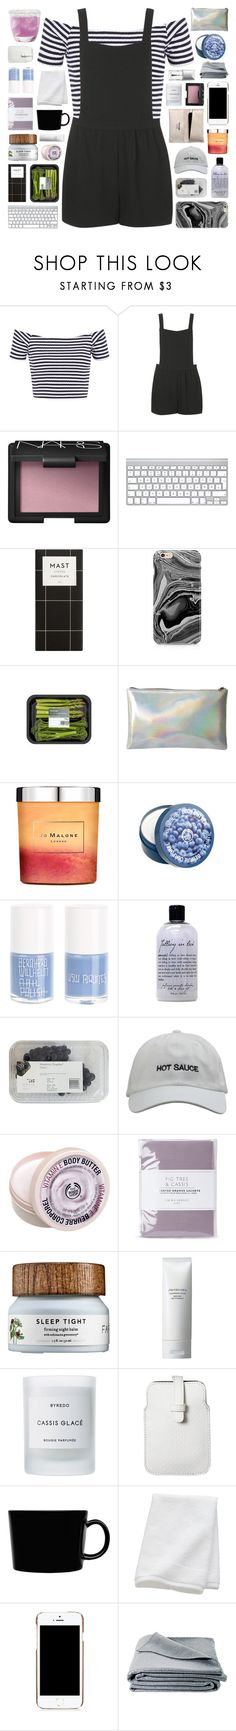 """metanoia"" by randomn3ss ❤ liked on Polyvore featuring Topshop, NARS Cosmetics, Samsung, Jo Malone, The Body Shop, Uslu Airlines, philosophy, Laura Ashley, Shiseido and Byredo"